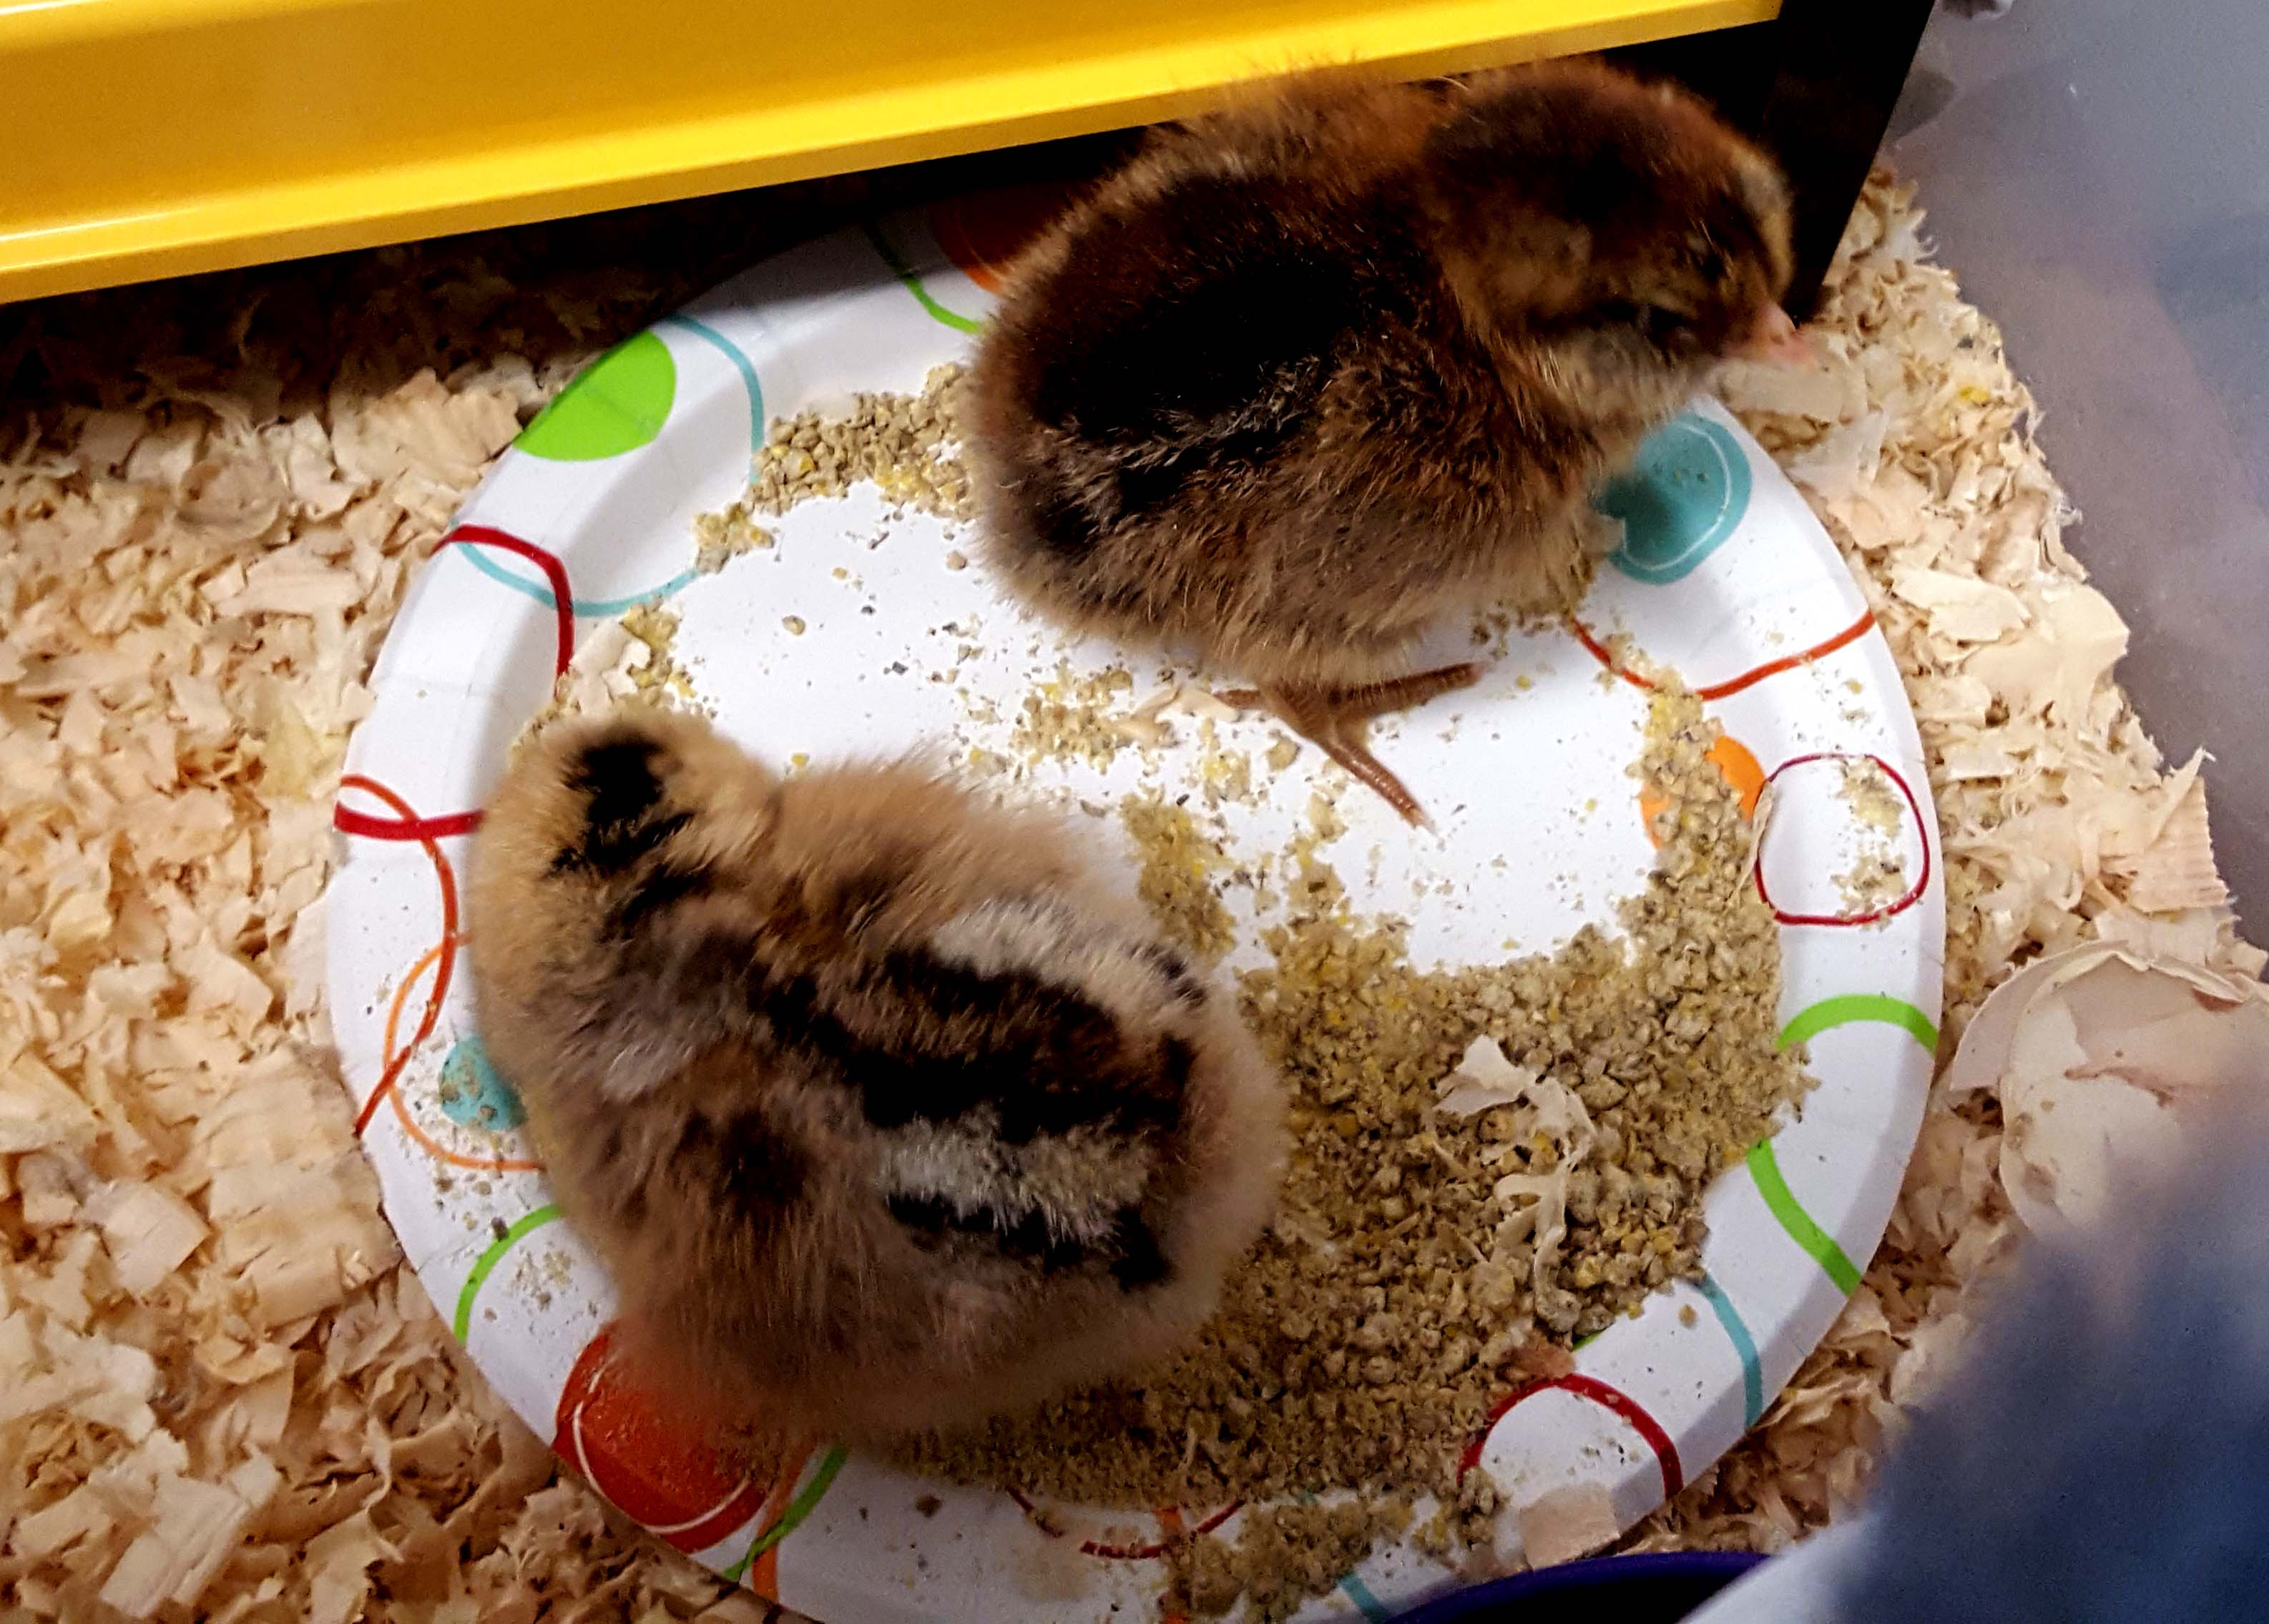 chickens_hatching_#1_#2_eatingplate_630x451